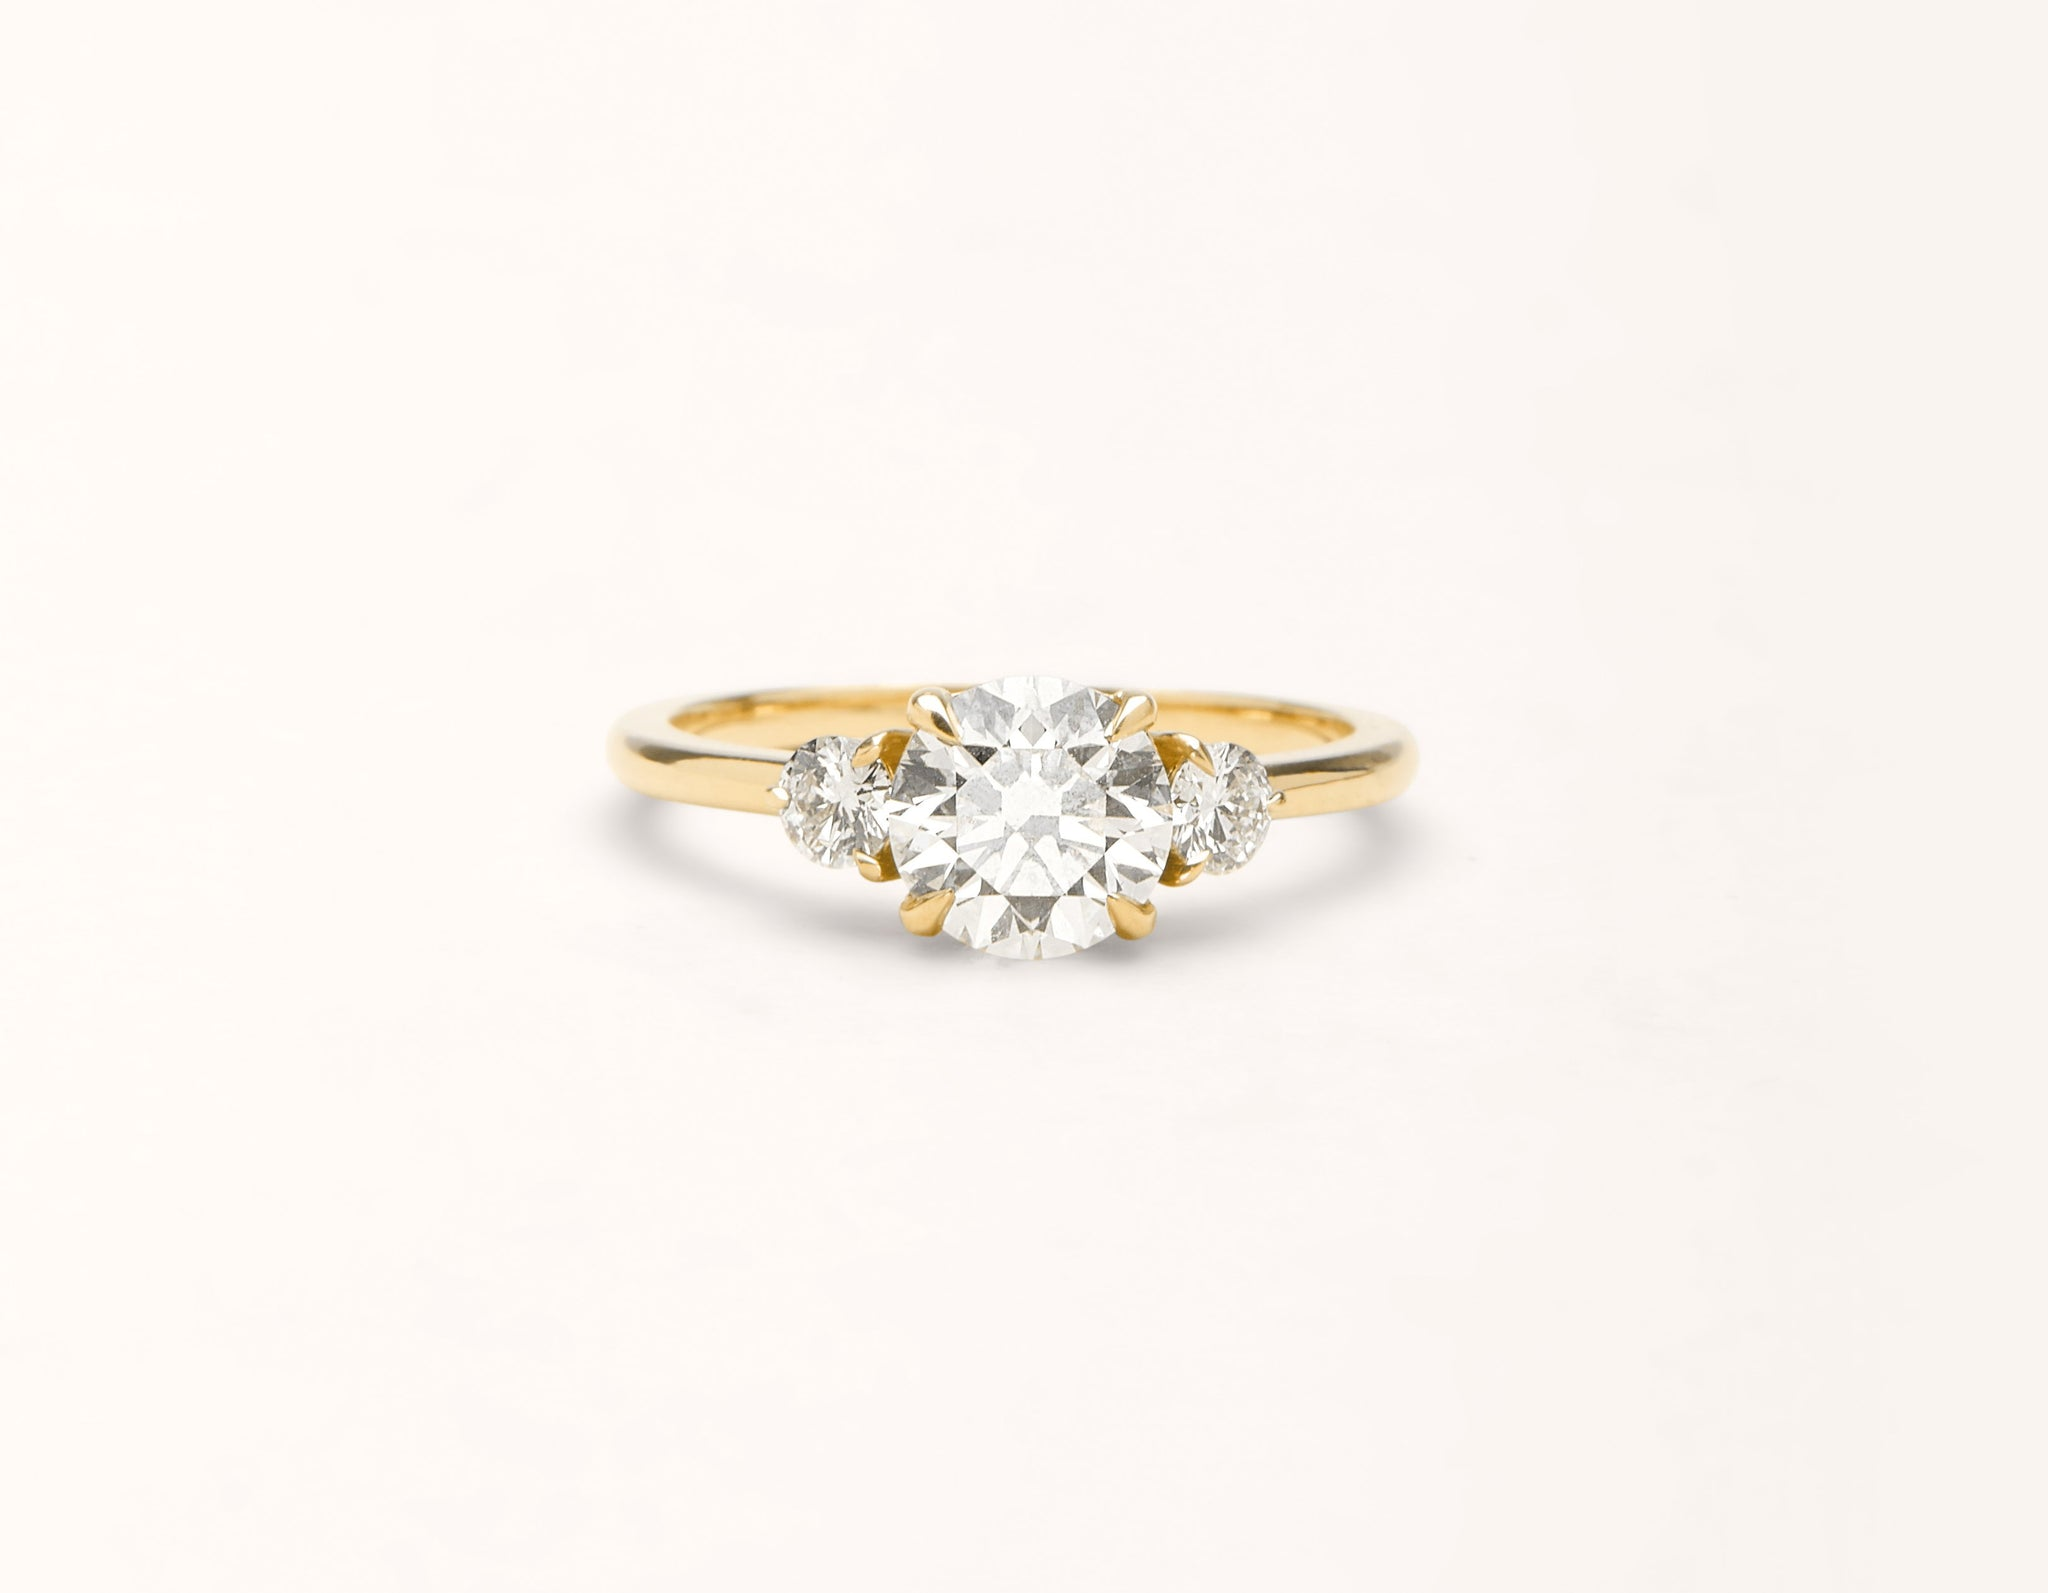 Minimalist 18k solid yellow gold The Three Stone engagement ring 1 ct round diamond Vrai and Oro